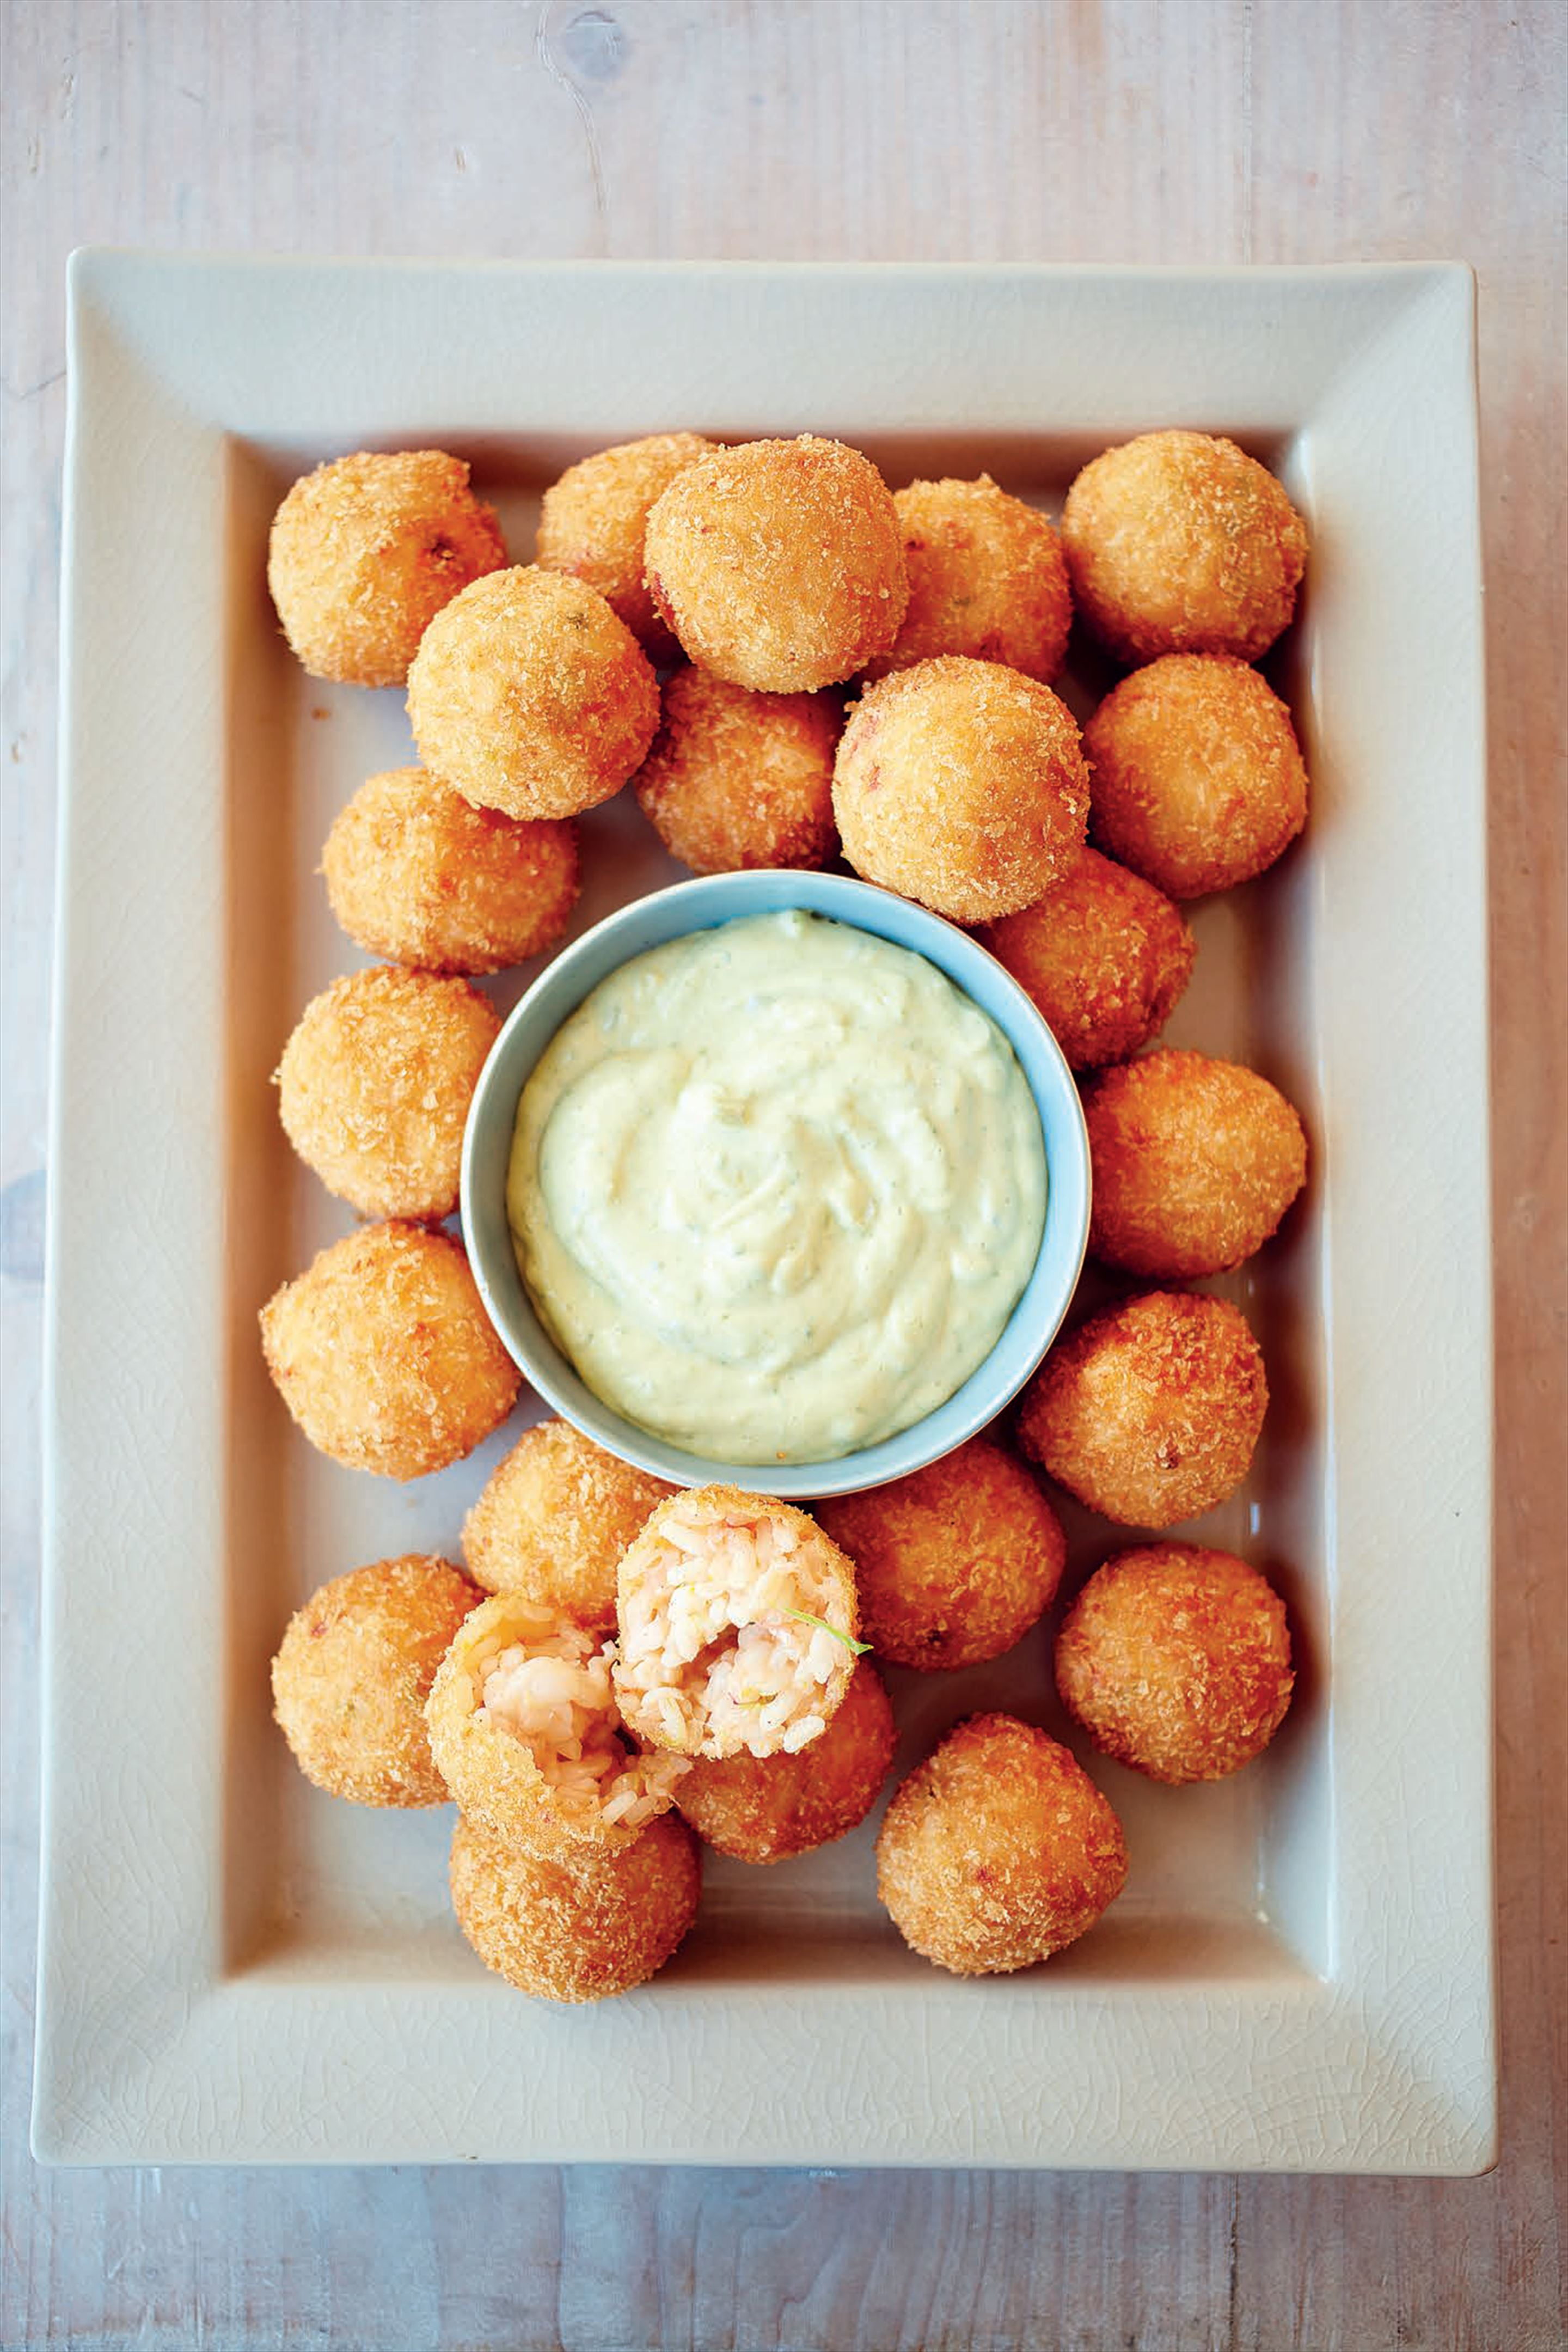 Lobster risotto balls, basil and orange mayonnaise